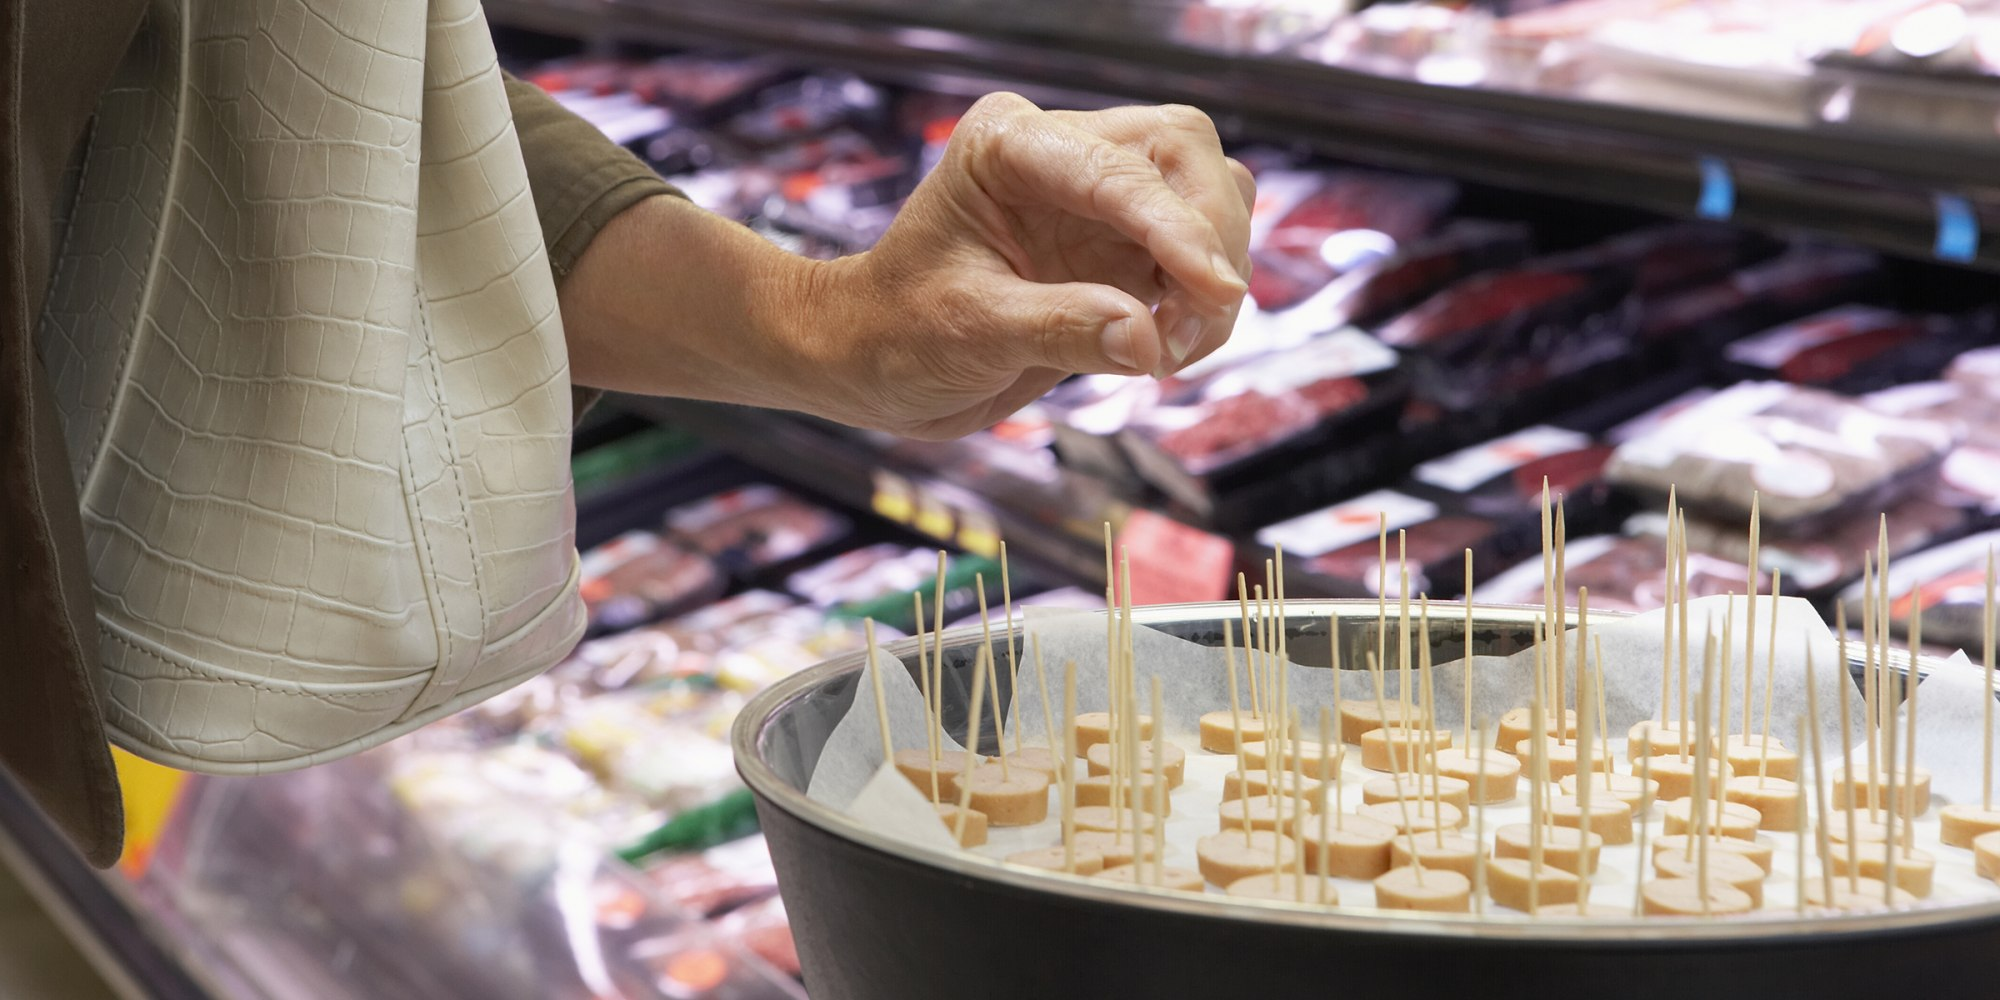 Whole Foods Market Resumes Open and Serve Demos